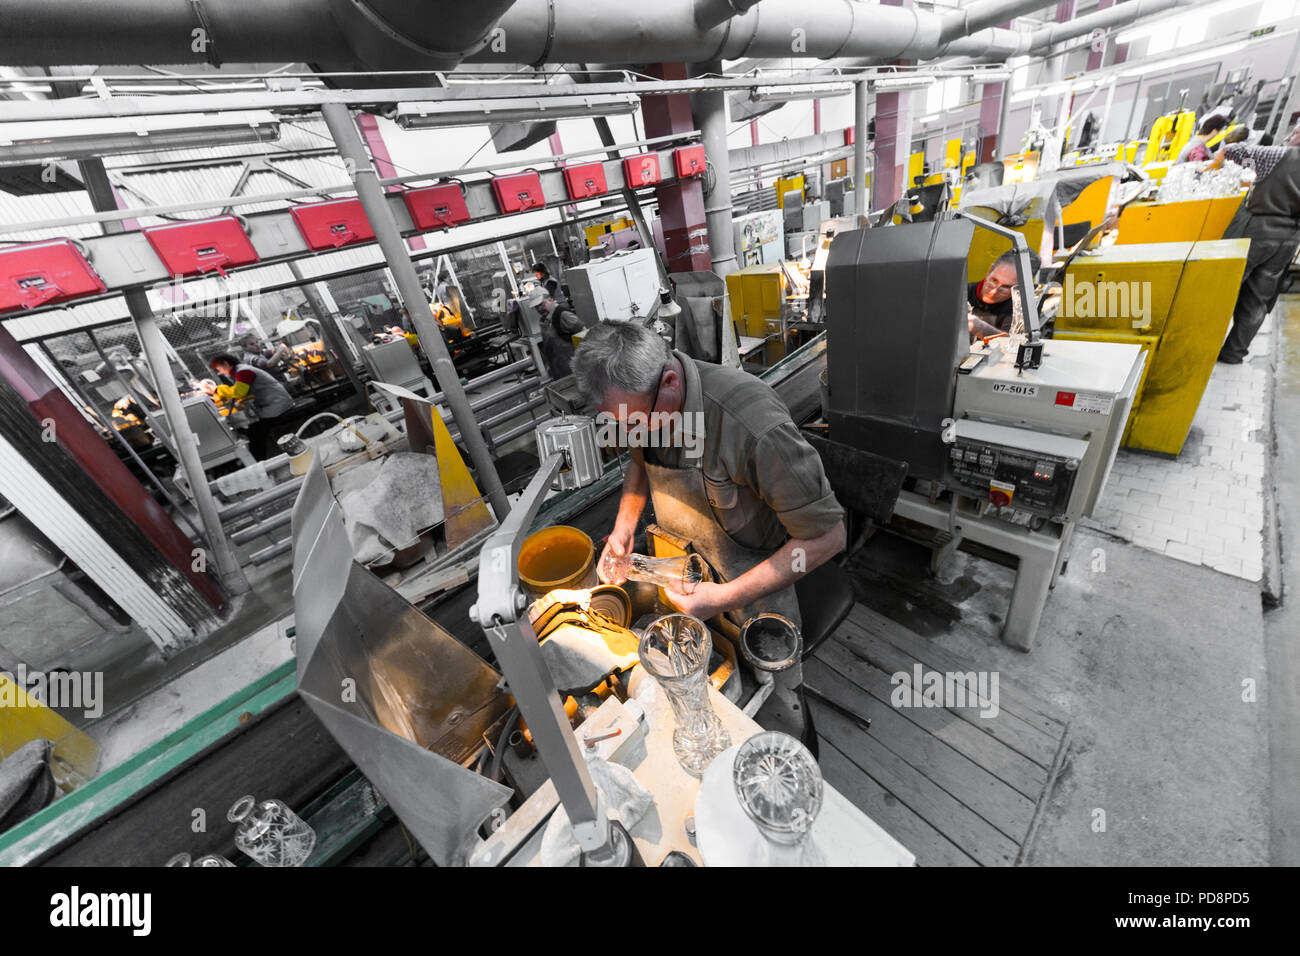 Factory Worker Stock Photos & Factory Worker Stock Images - Alamy